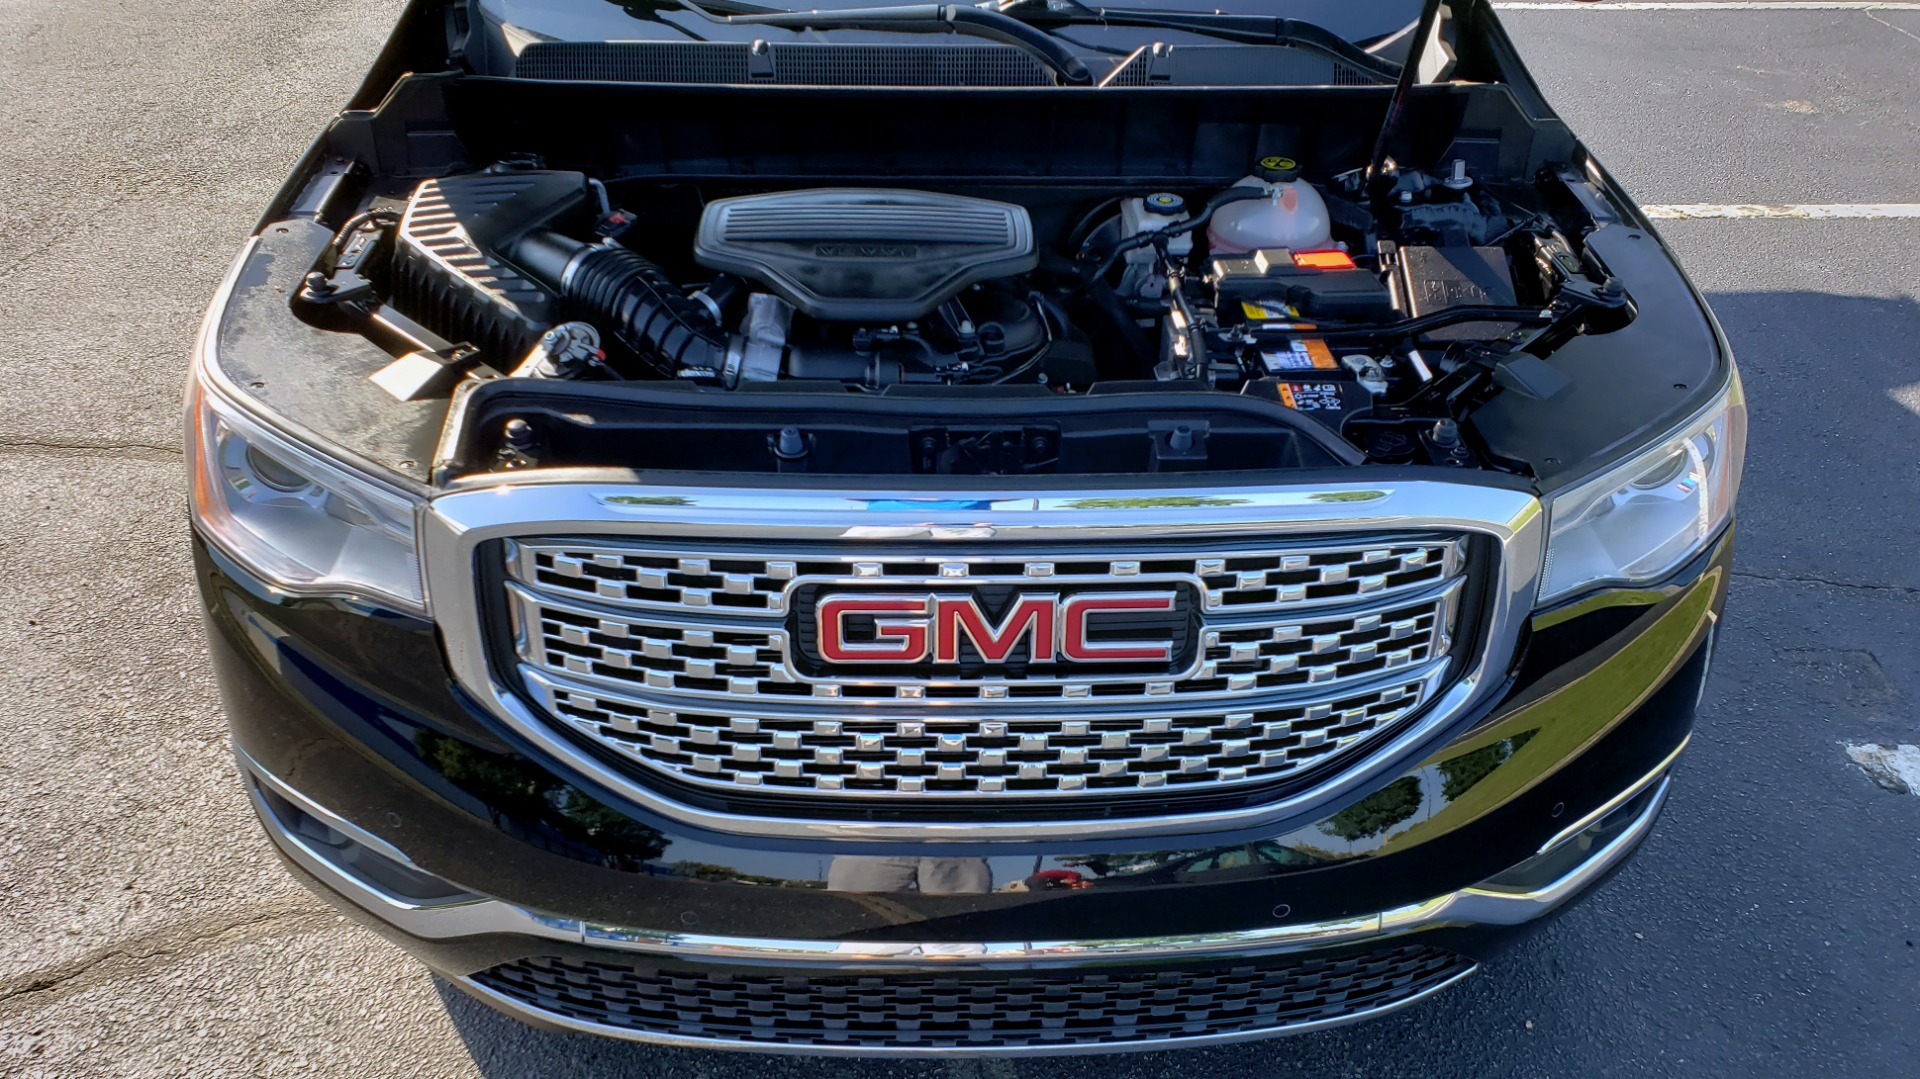 Used 2017 GMC ACADIA DENALI / FWD / NAV / SUNROOF / CAMERA / 3-ROW for sale Sold at Formula Imports in Charlotte NC 28227 15